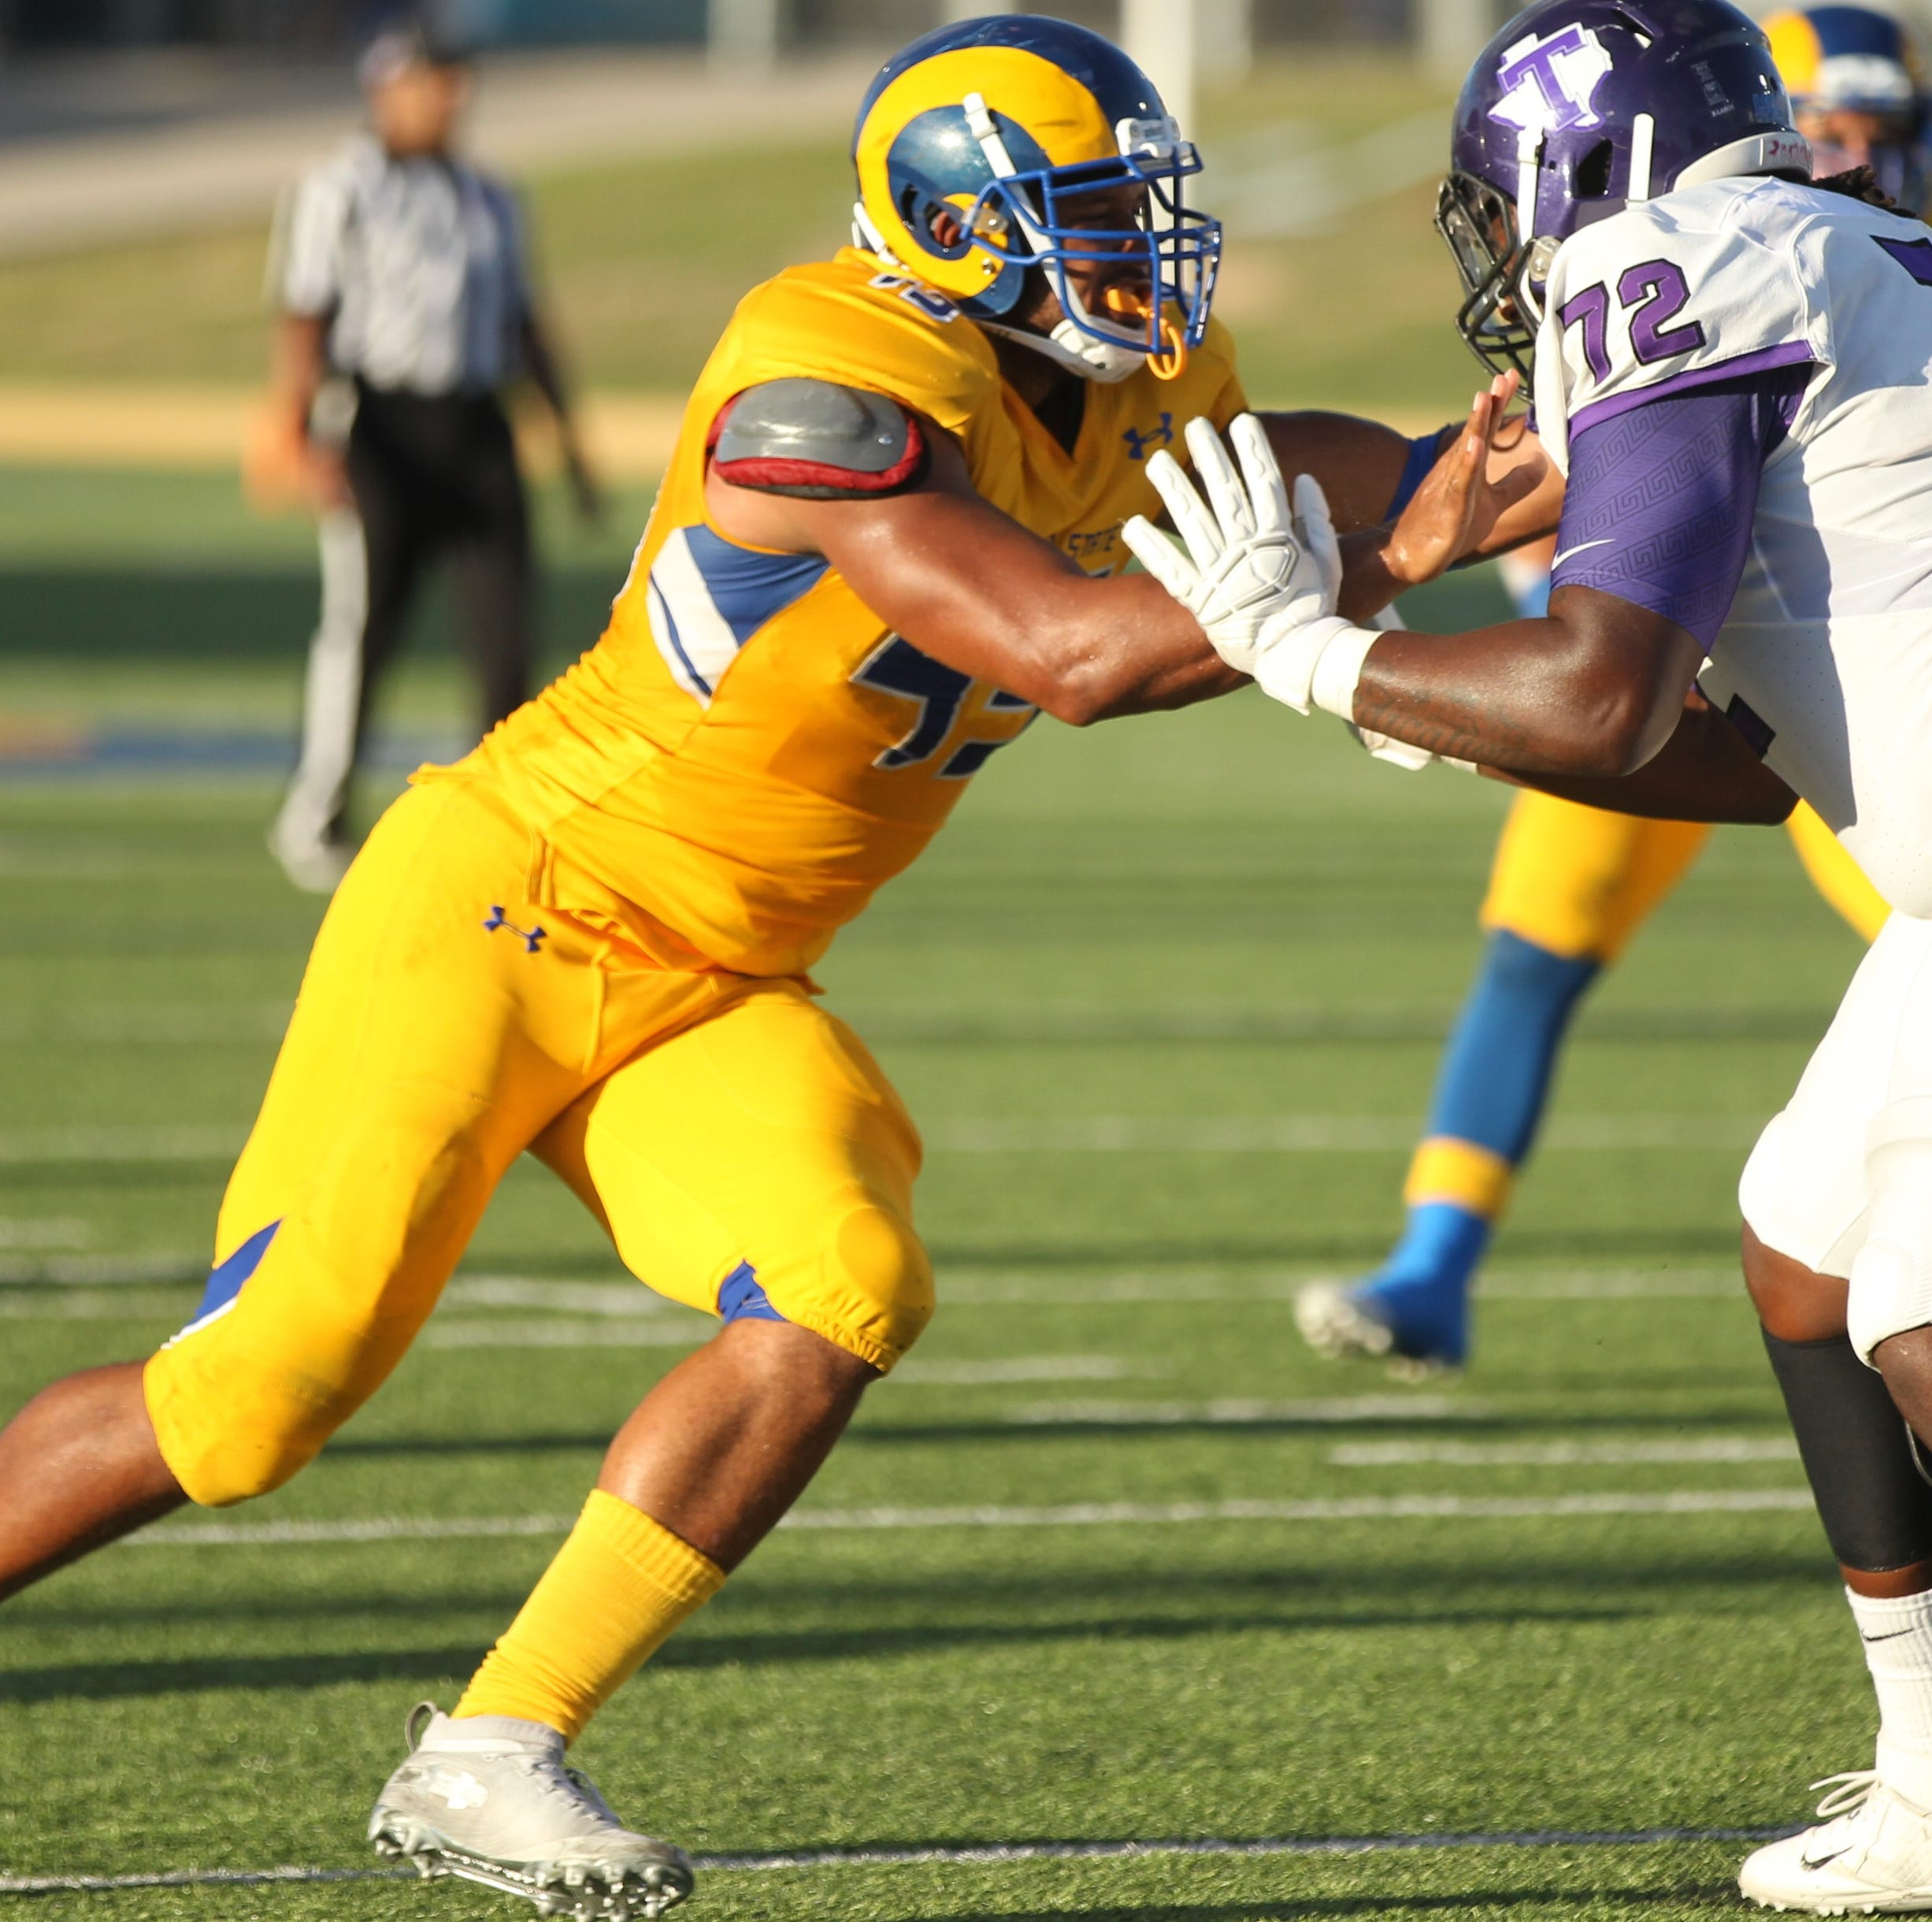 Angelo State great Markus Jones signs with NFL team